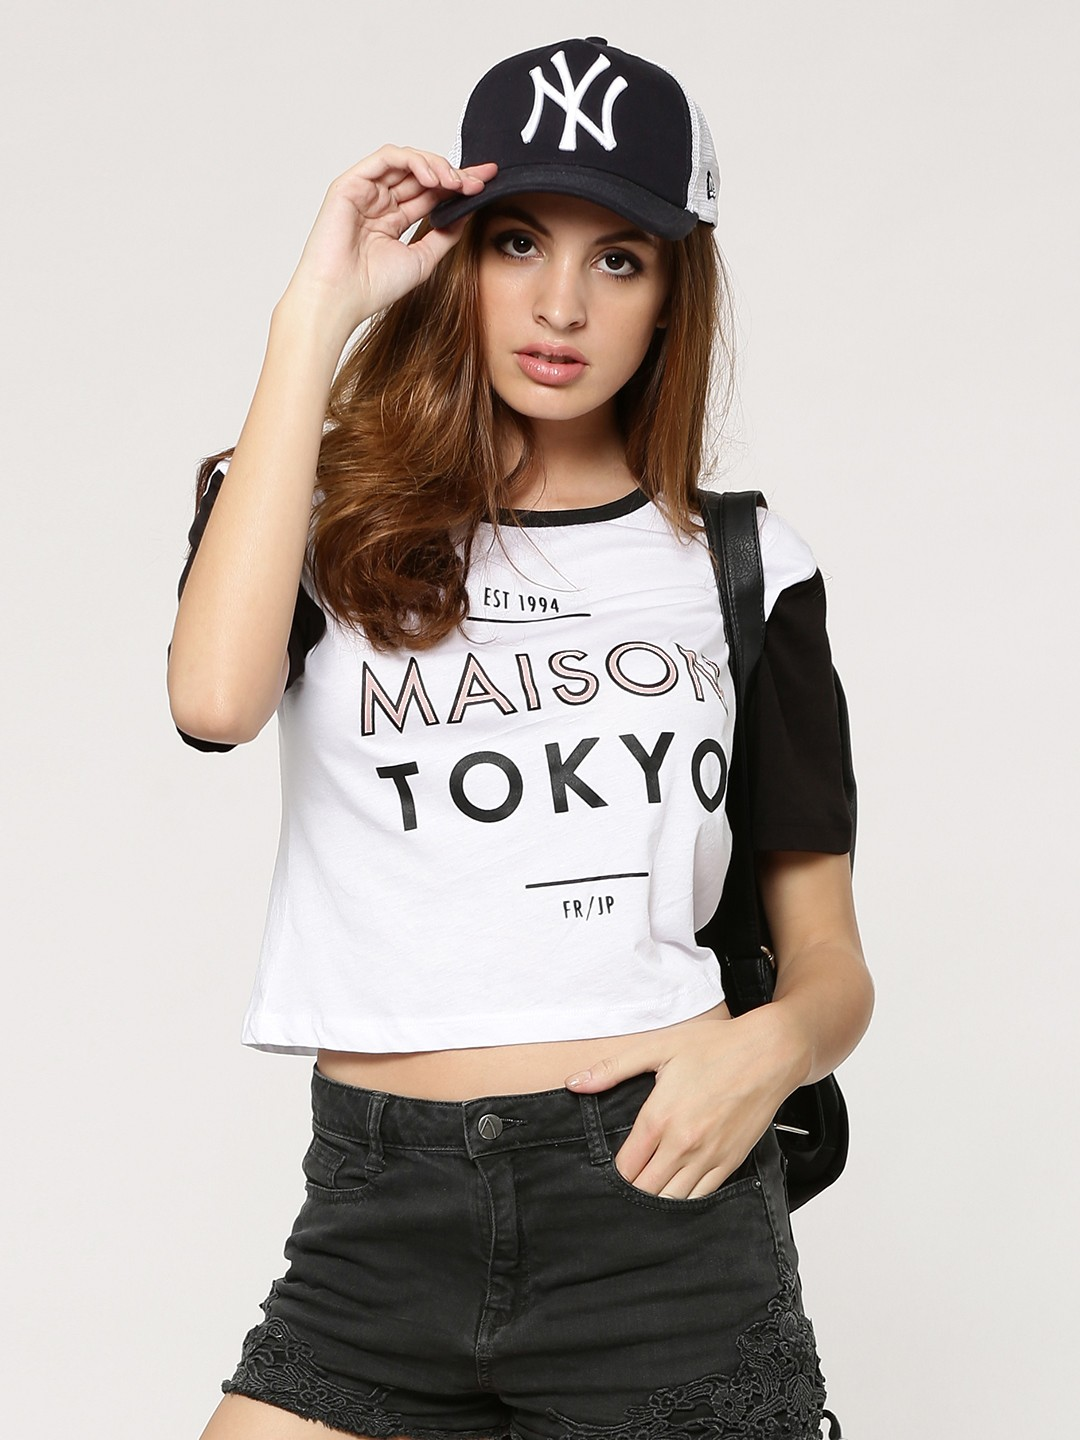 buy new look maison tokyo colour block t shirt for women women 39 s white t shirts online in india. Black Bedroom Furniture Sets. Home Design Ideas